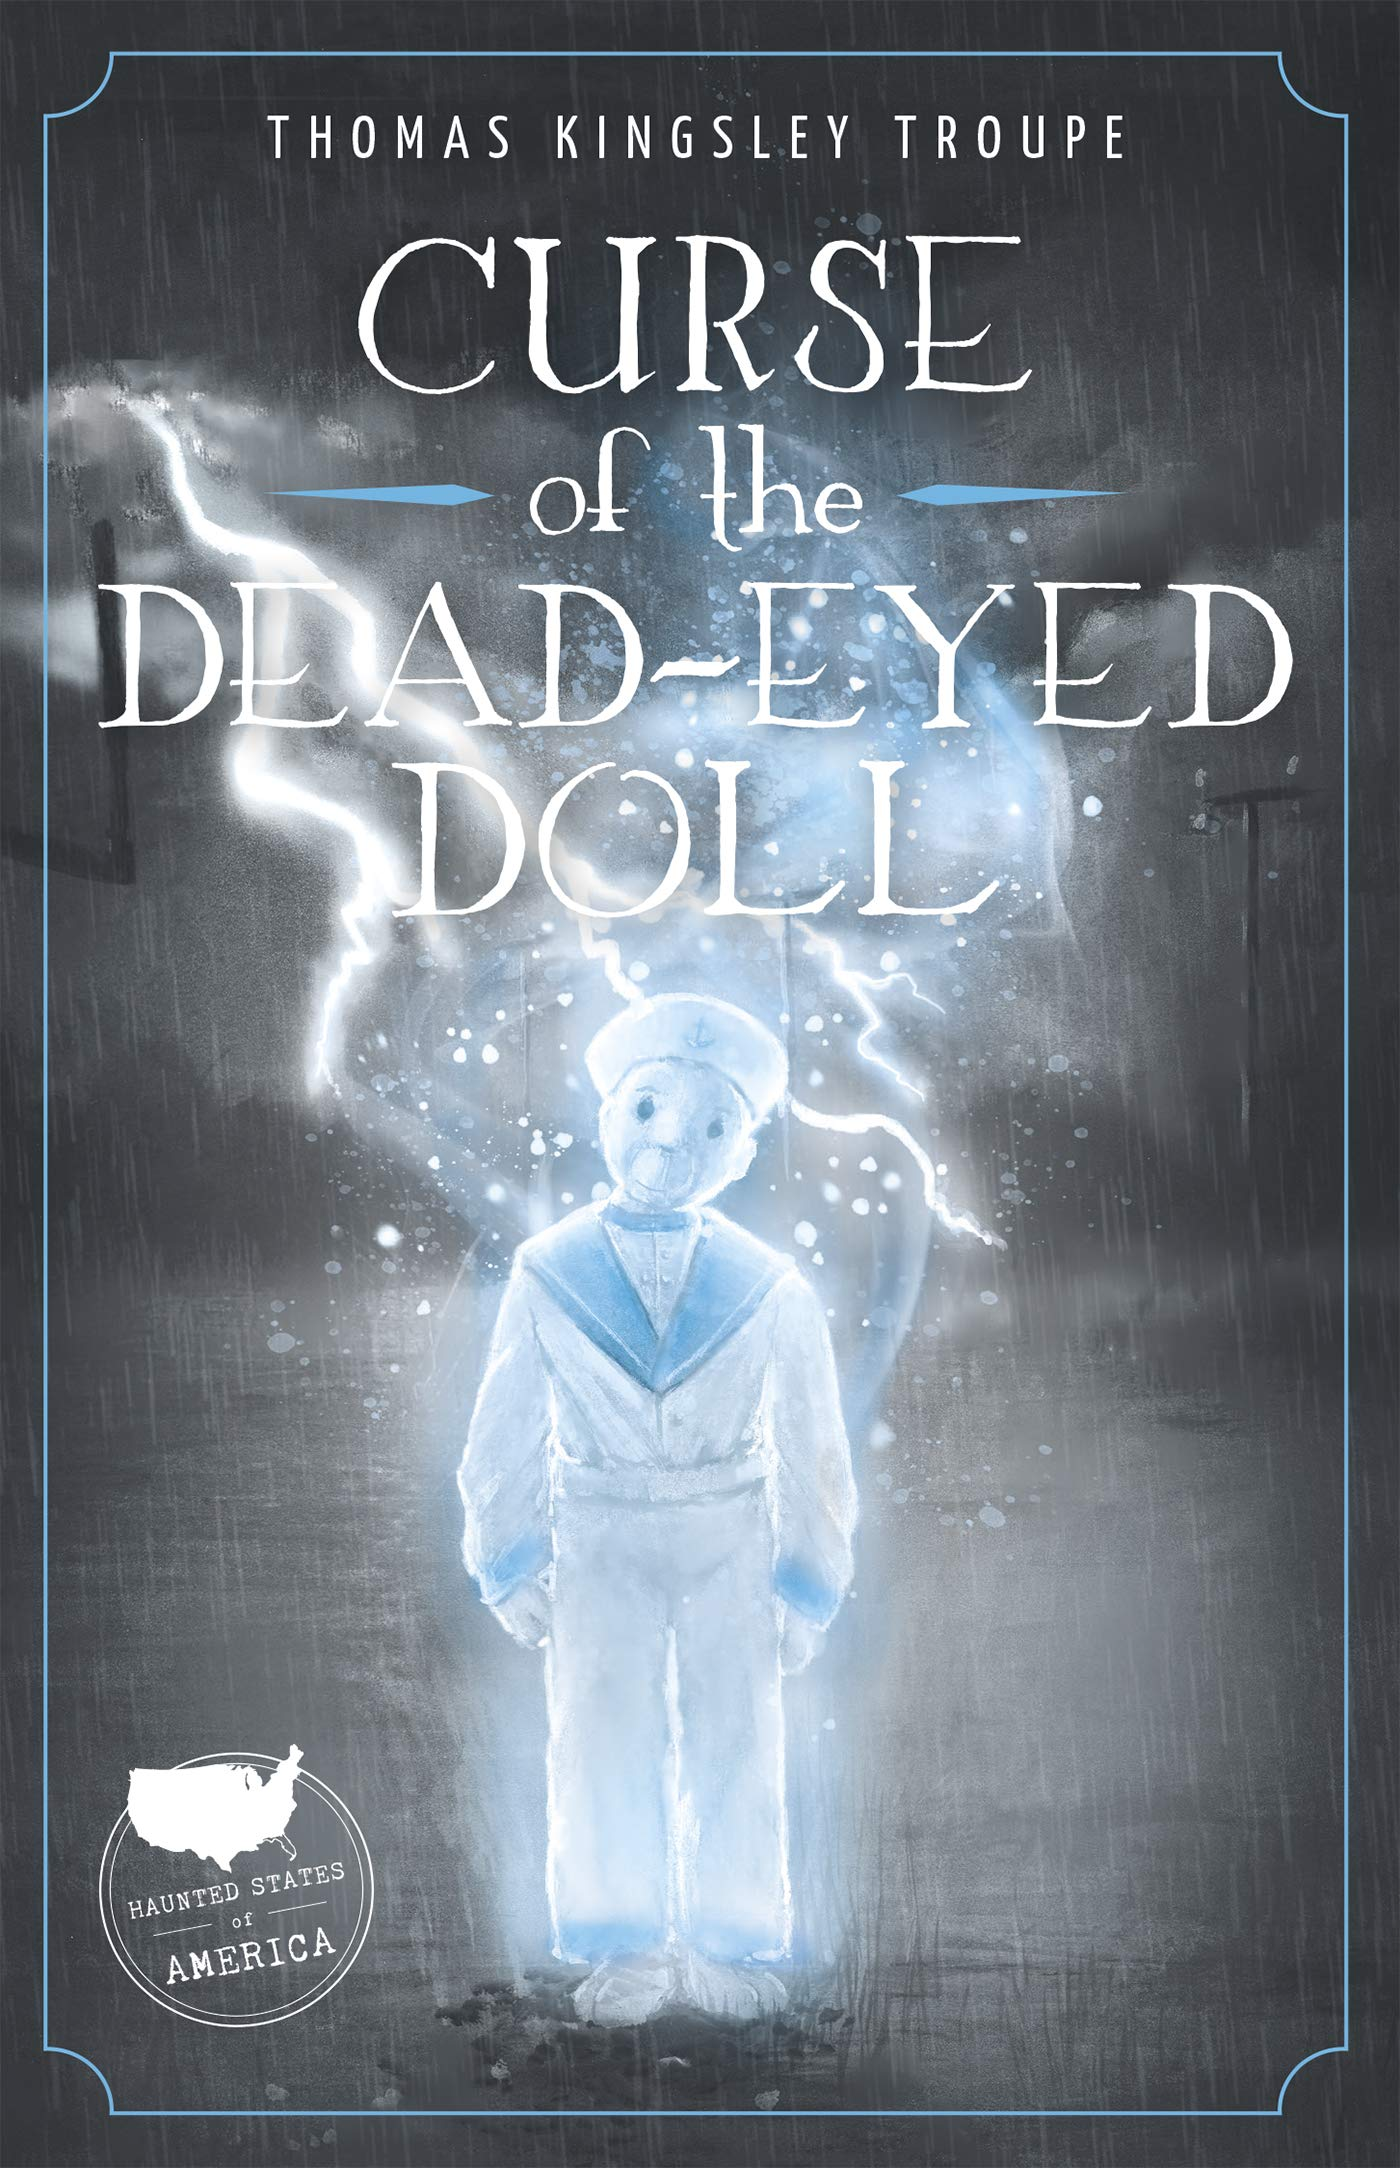 Curse of the Dead-Eyed Doll_Thomas Kingsley Troupe.jpg